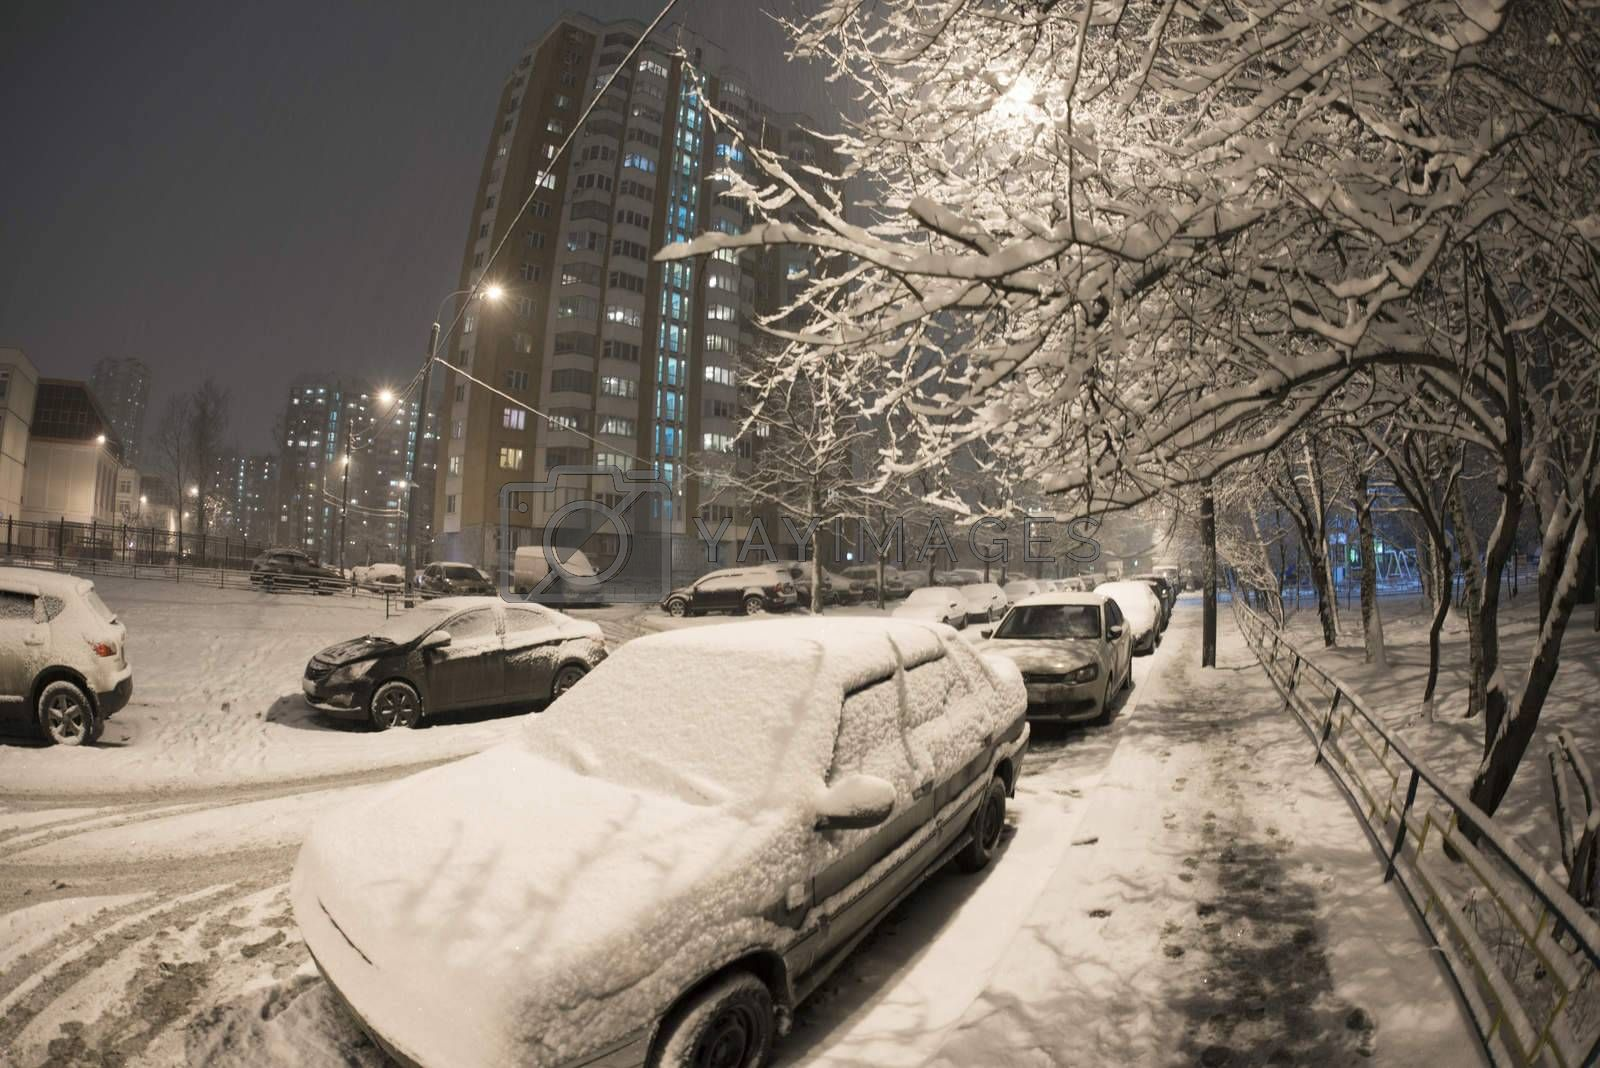 Moscow street in winter night.